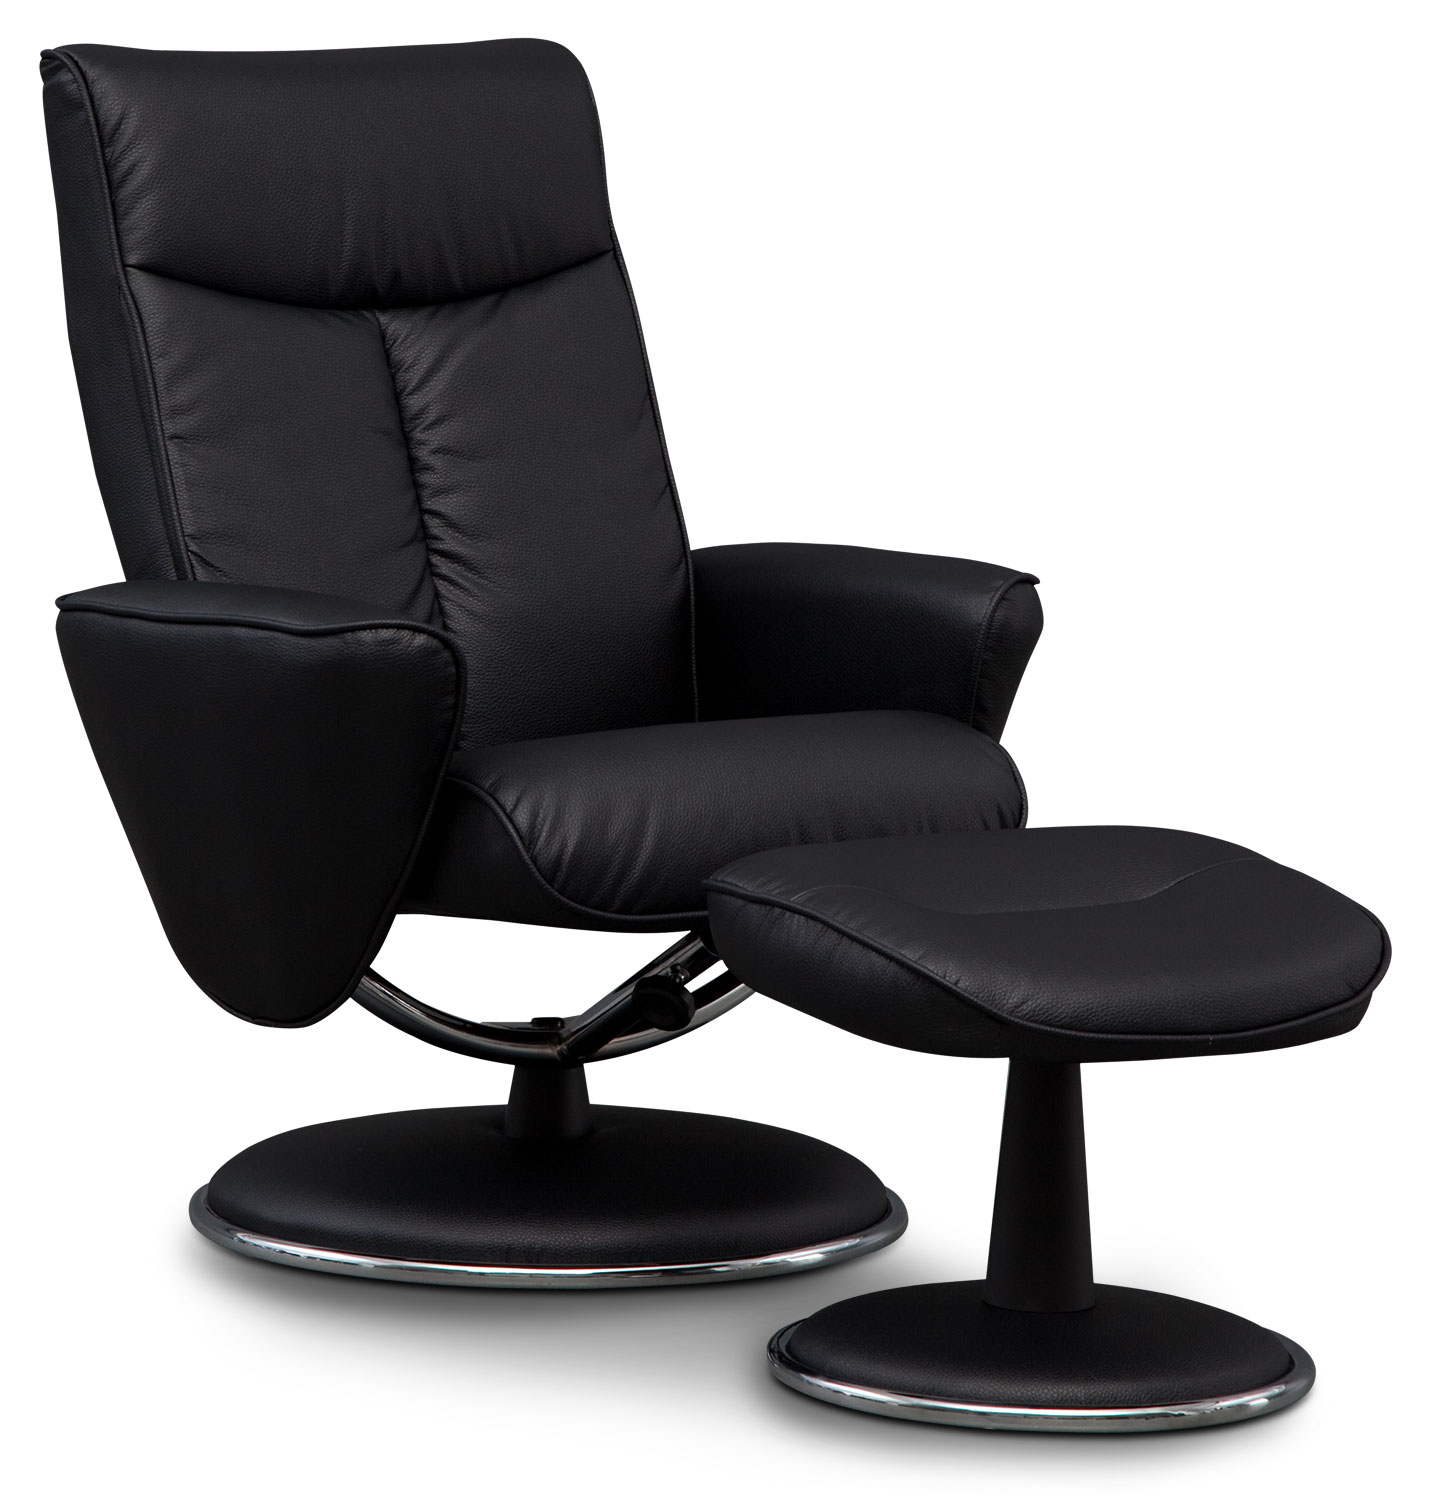 Living Room Furniture - Tracer Reclining Chair and Ottoman - Black